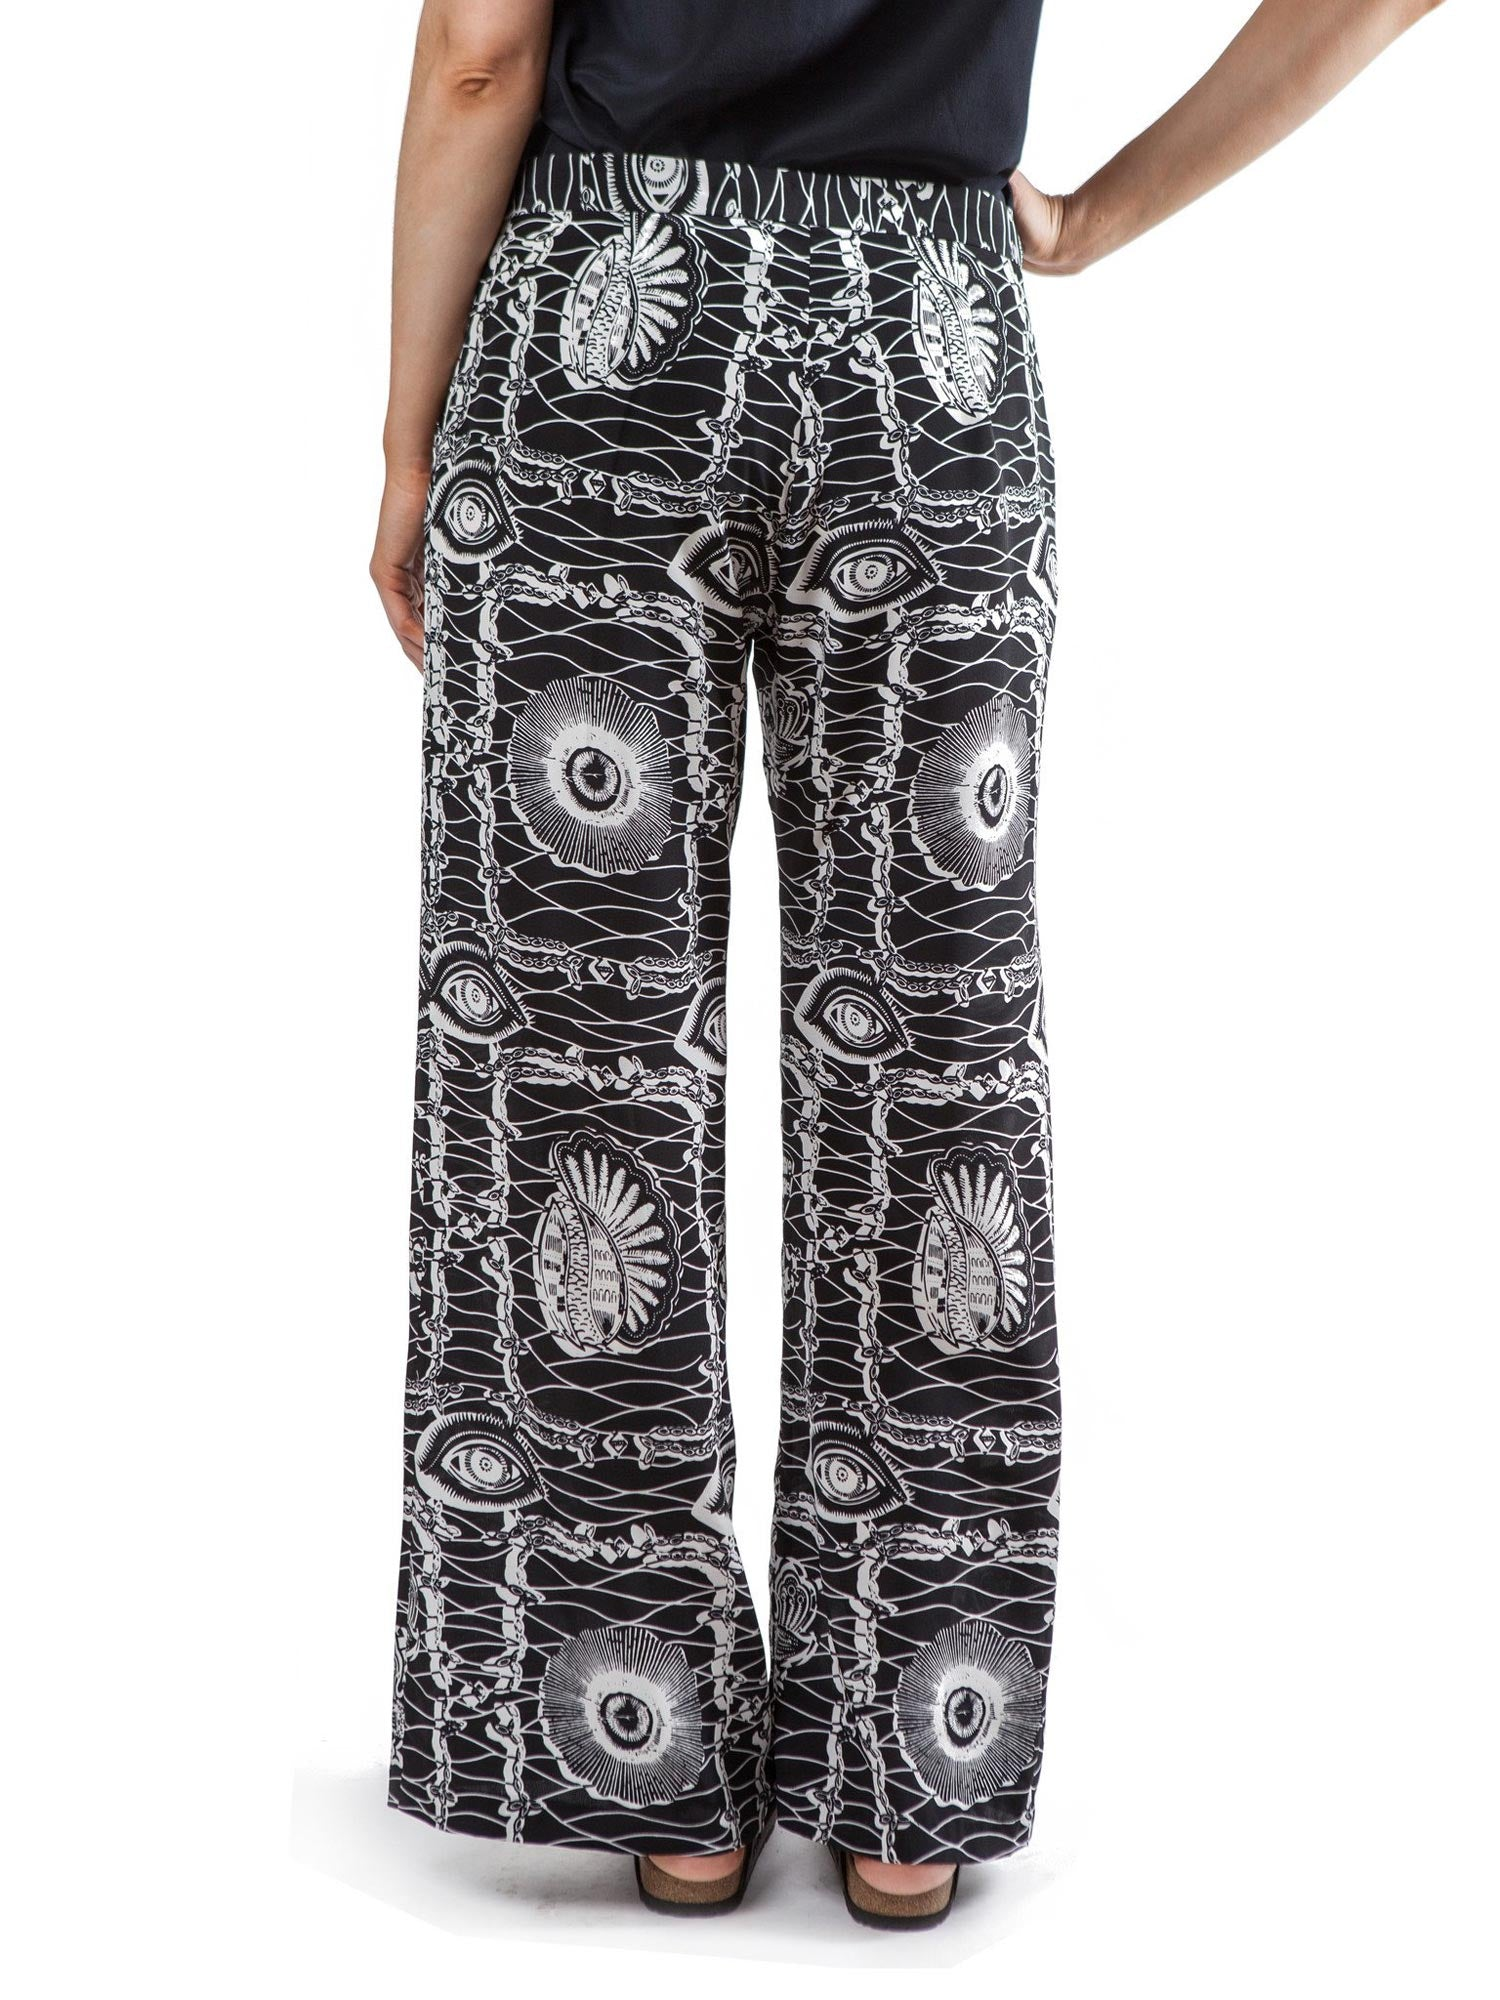 Eye Print pants | Silk Crepe de Chine